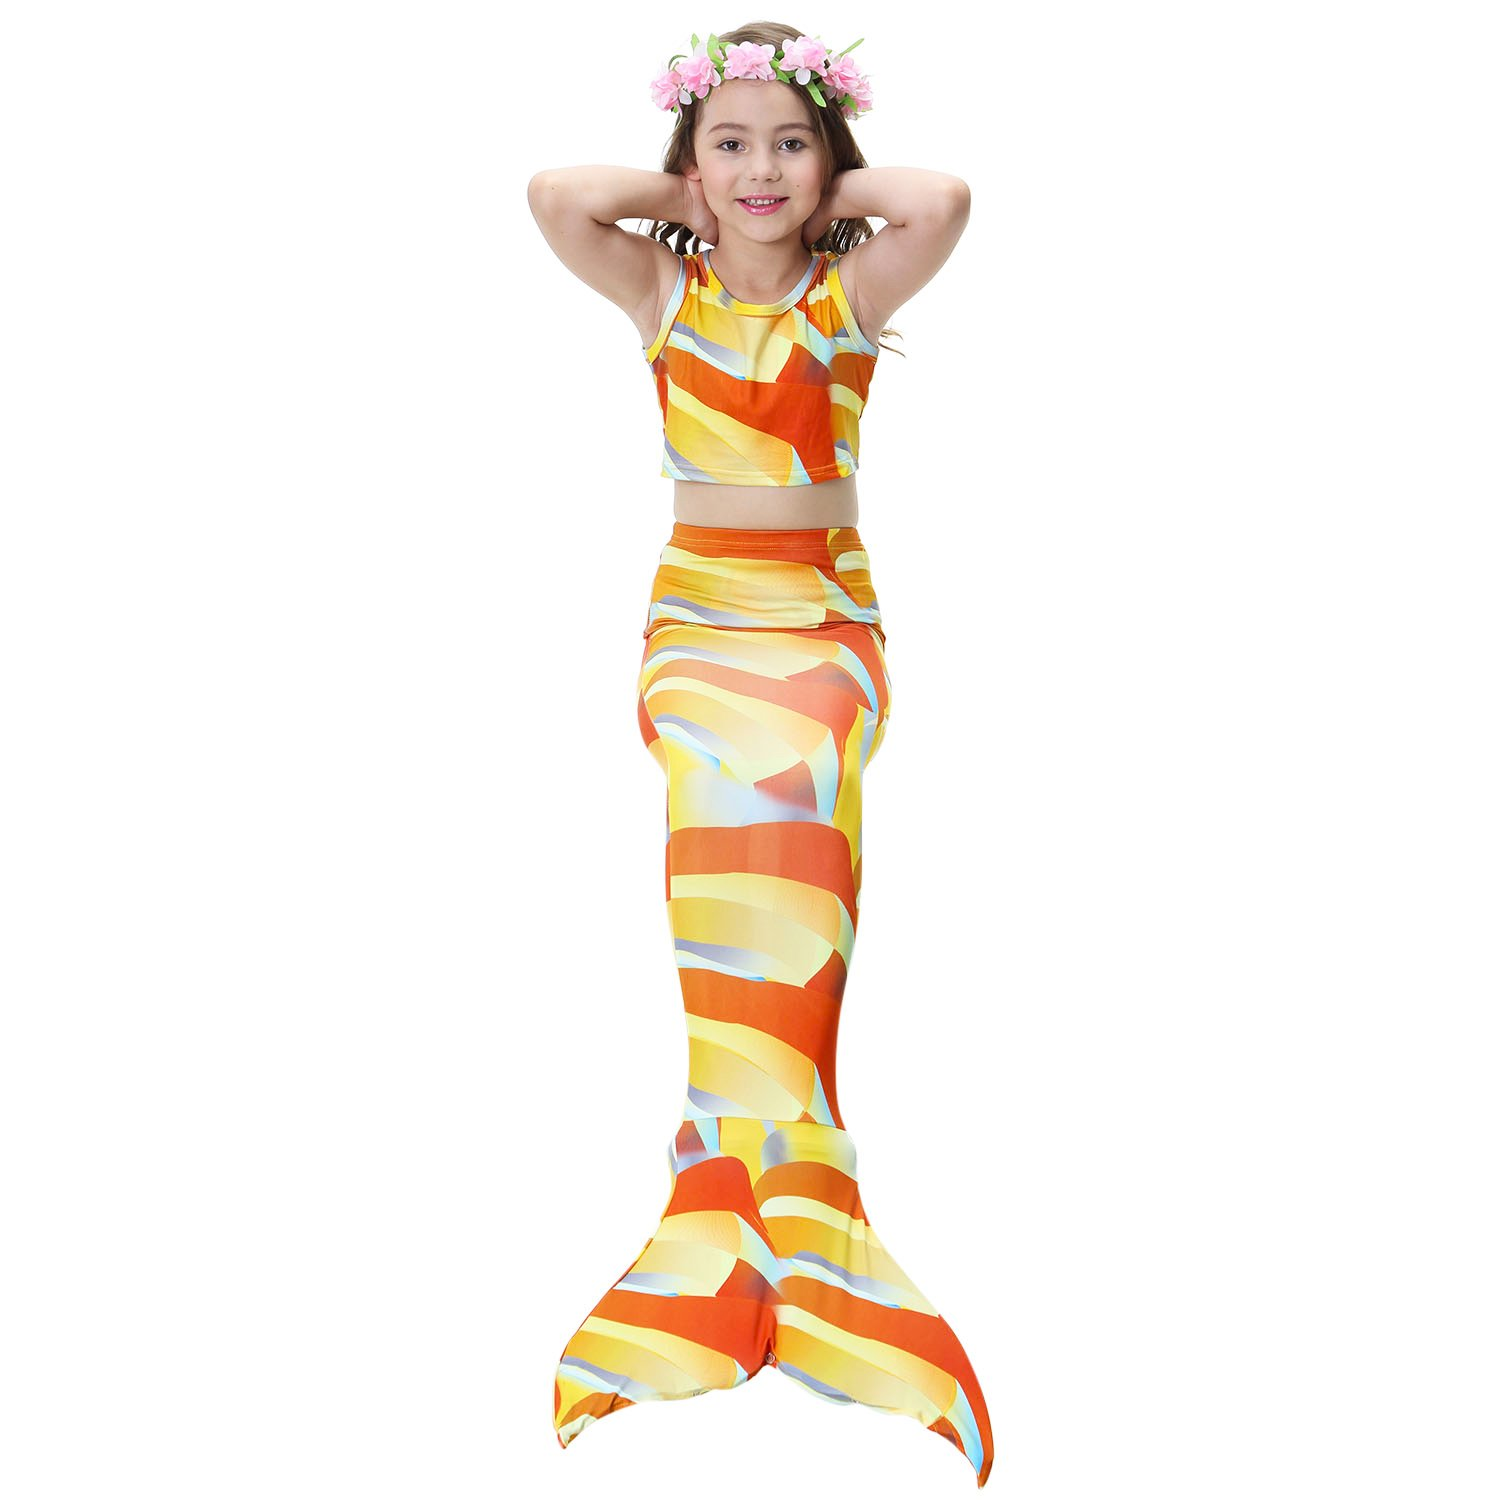 99ec8048b65e9 Online Cheap wholesale sophiashopping 3pcs Girls Tankini Swimsuit Sparkle  Bathing Suit With Mermaid Tail For Swimming Girls Suppliers